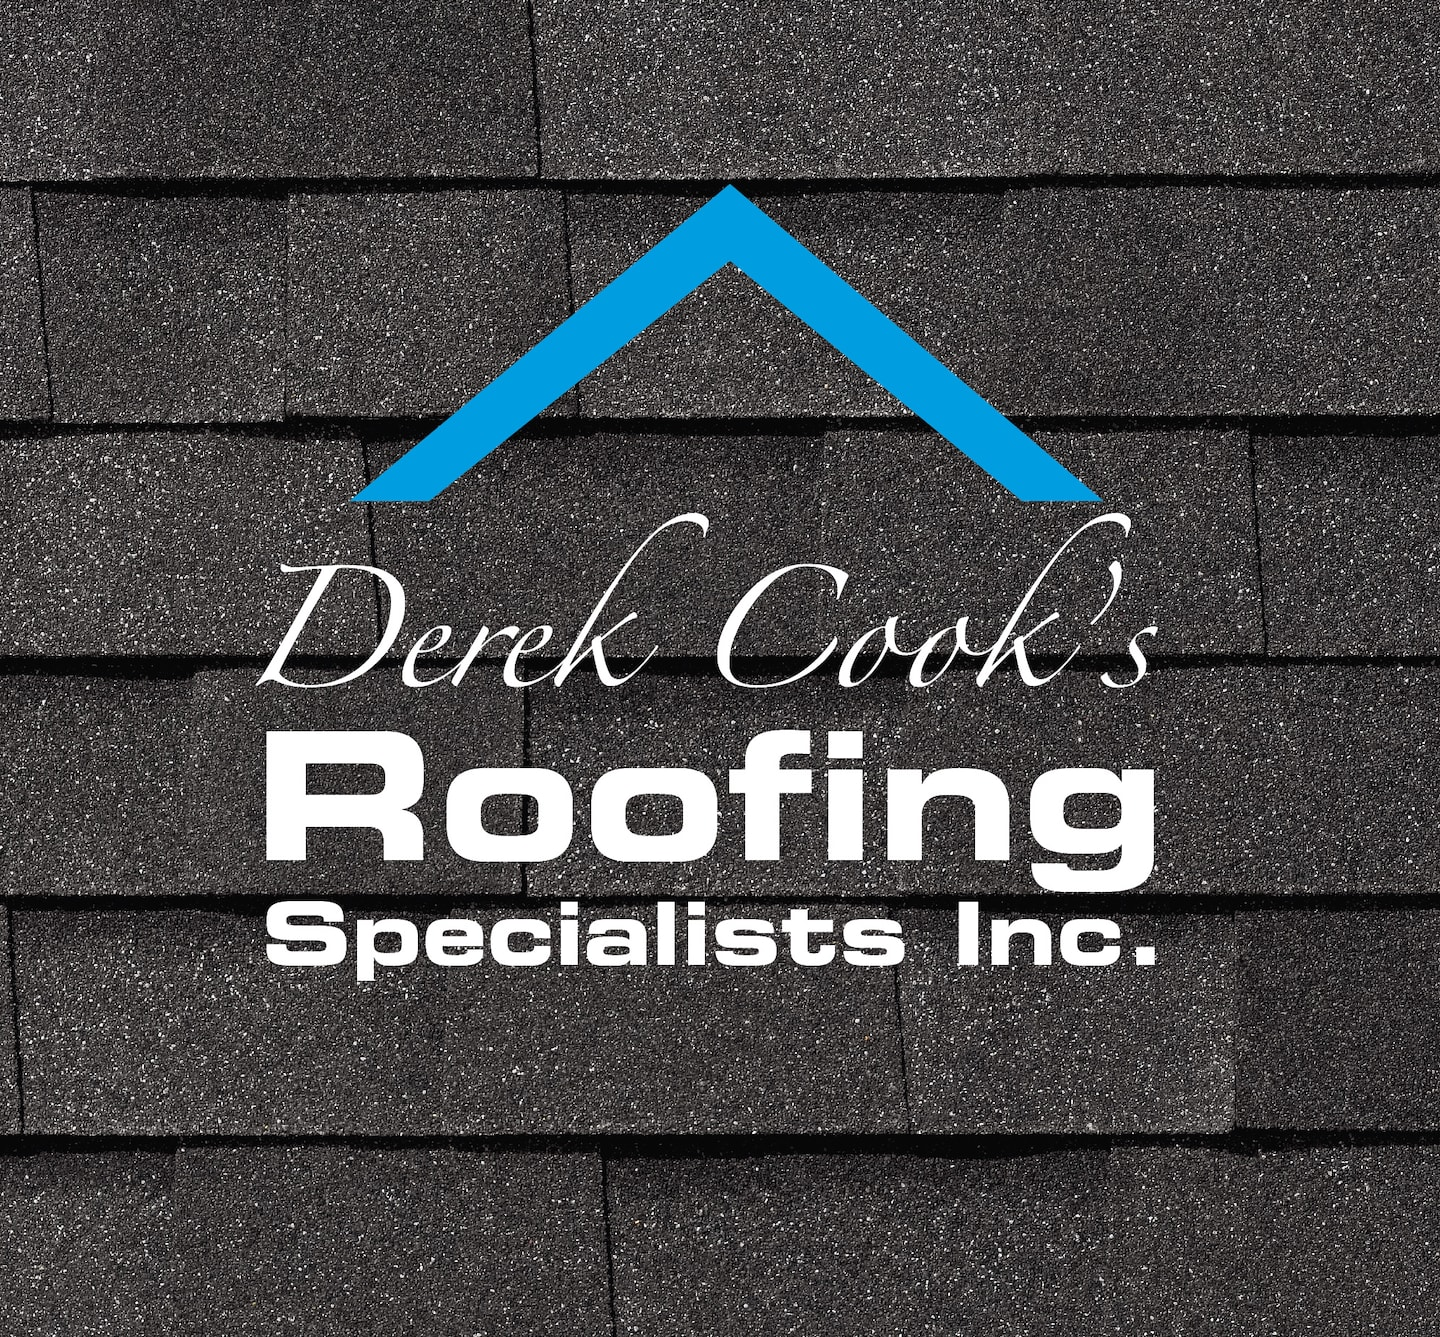 Atlanta Roofing Specialists Reviews